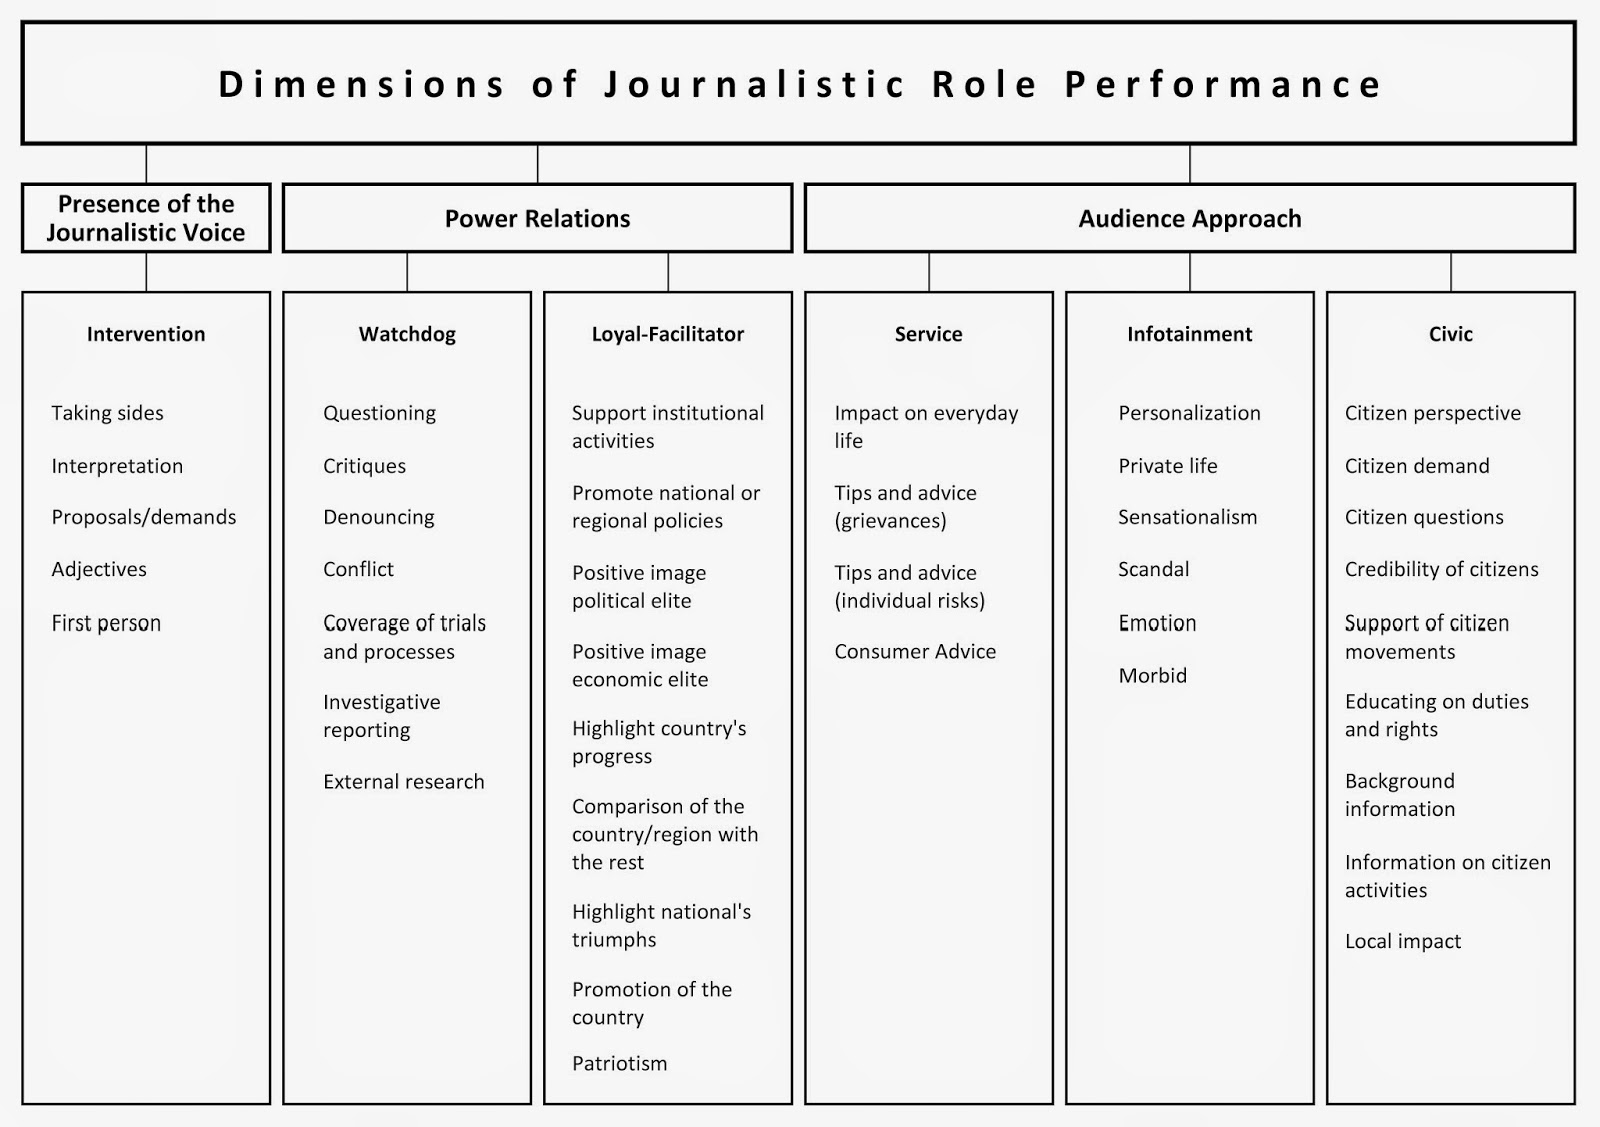 journalistic role performance around the globe the project